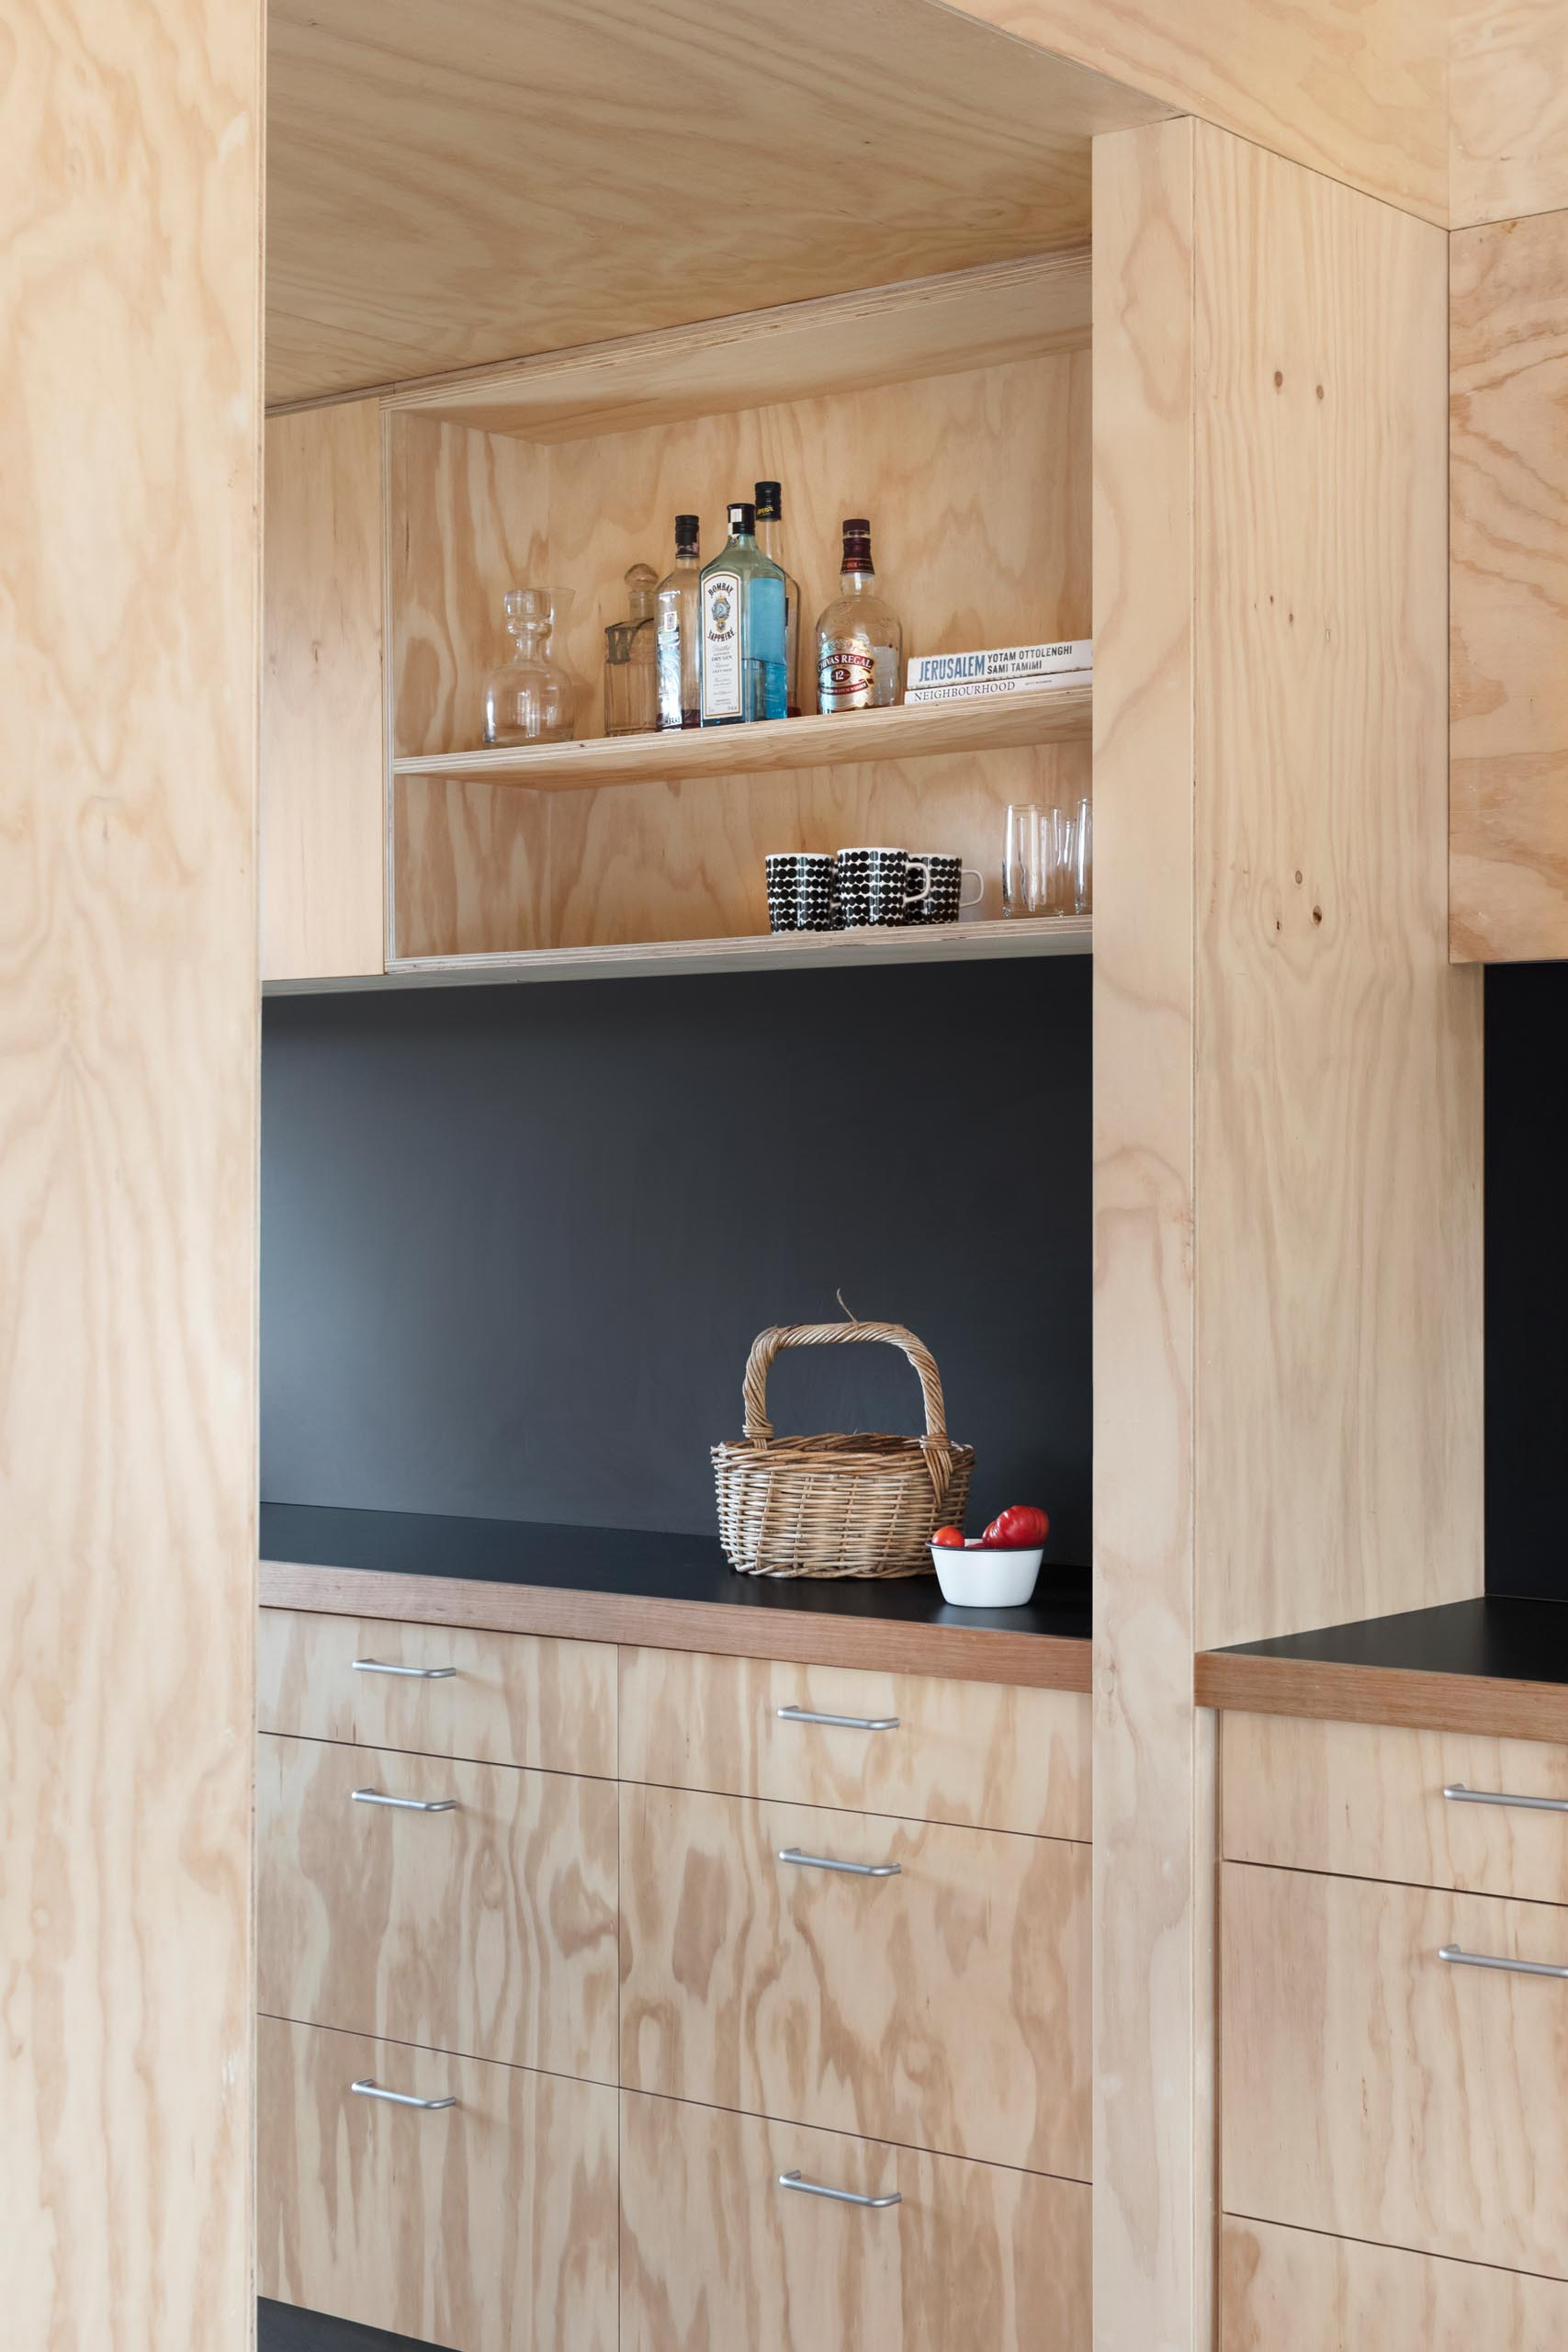 A modern plywood kitchen with a matte black countertop and backsplash.